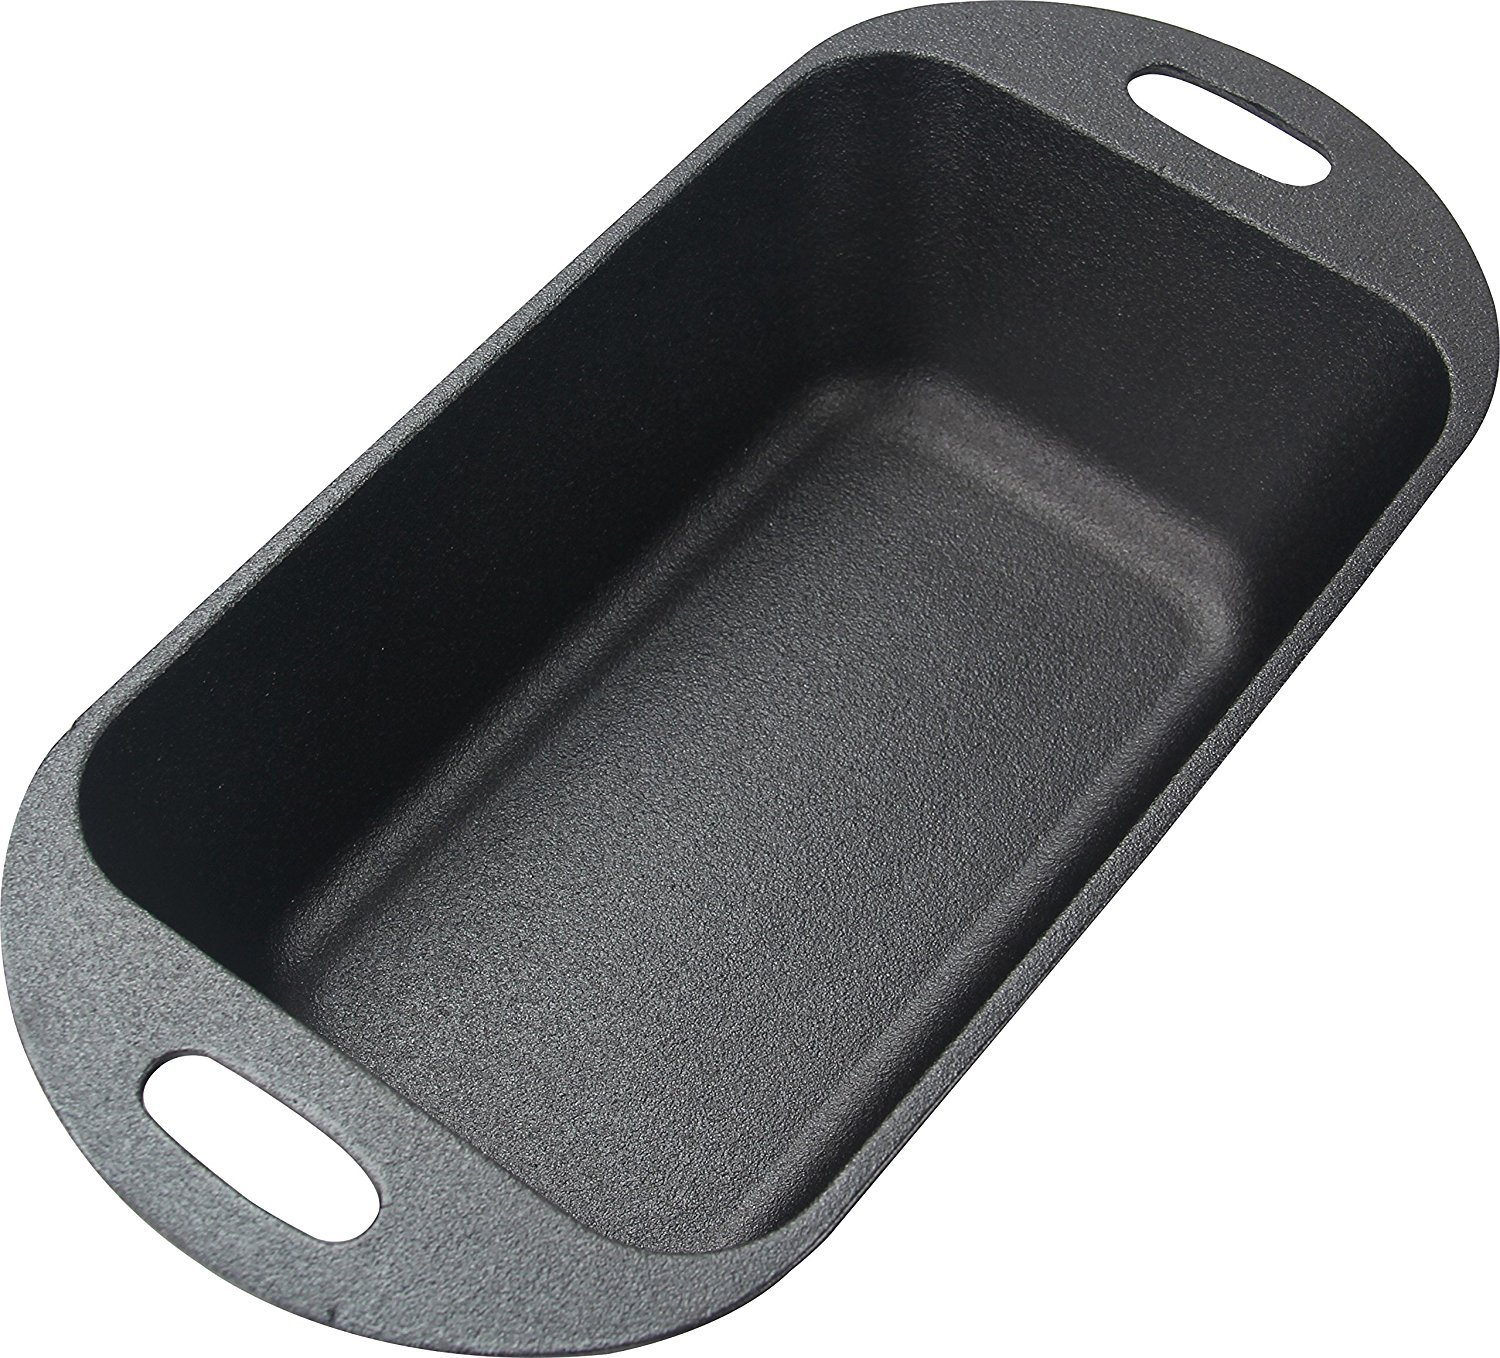 Utopia Kitchen Pre-Seasoned Cast Iron Loaf Pan for Baking - 12 Inch by 6 Inch by 3 Inch UK0223